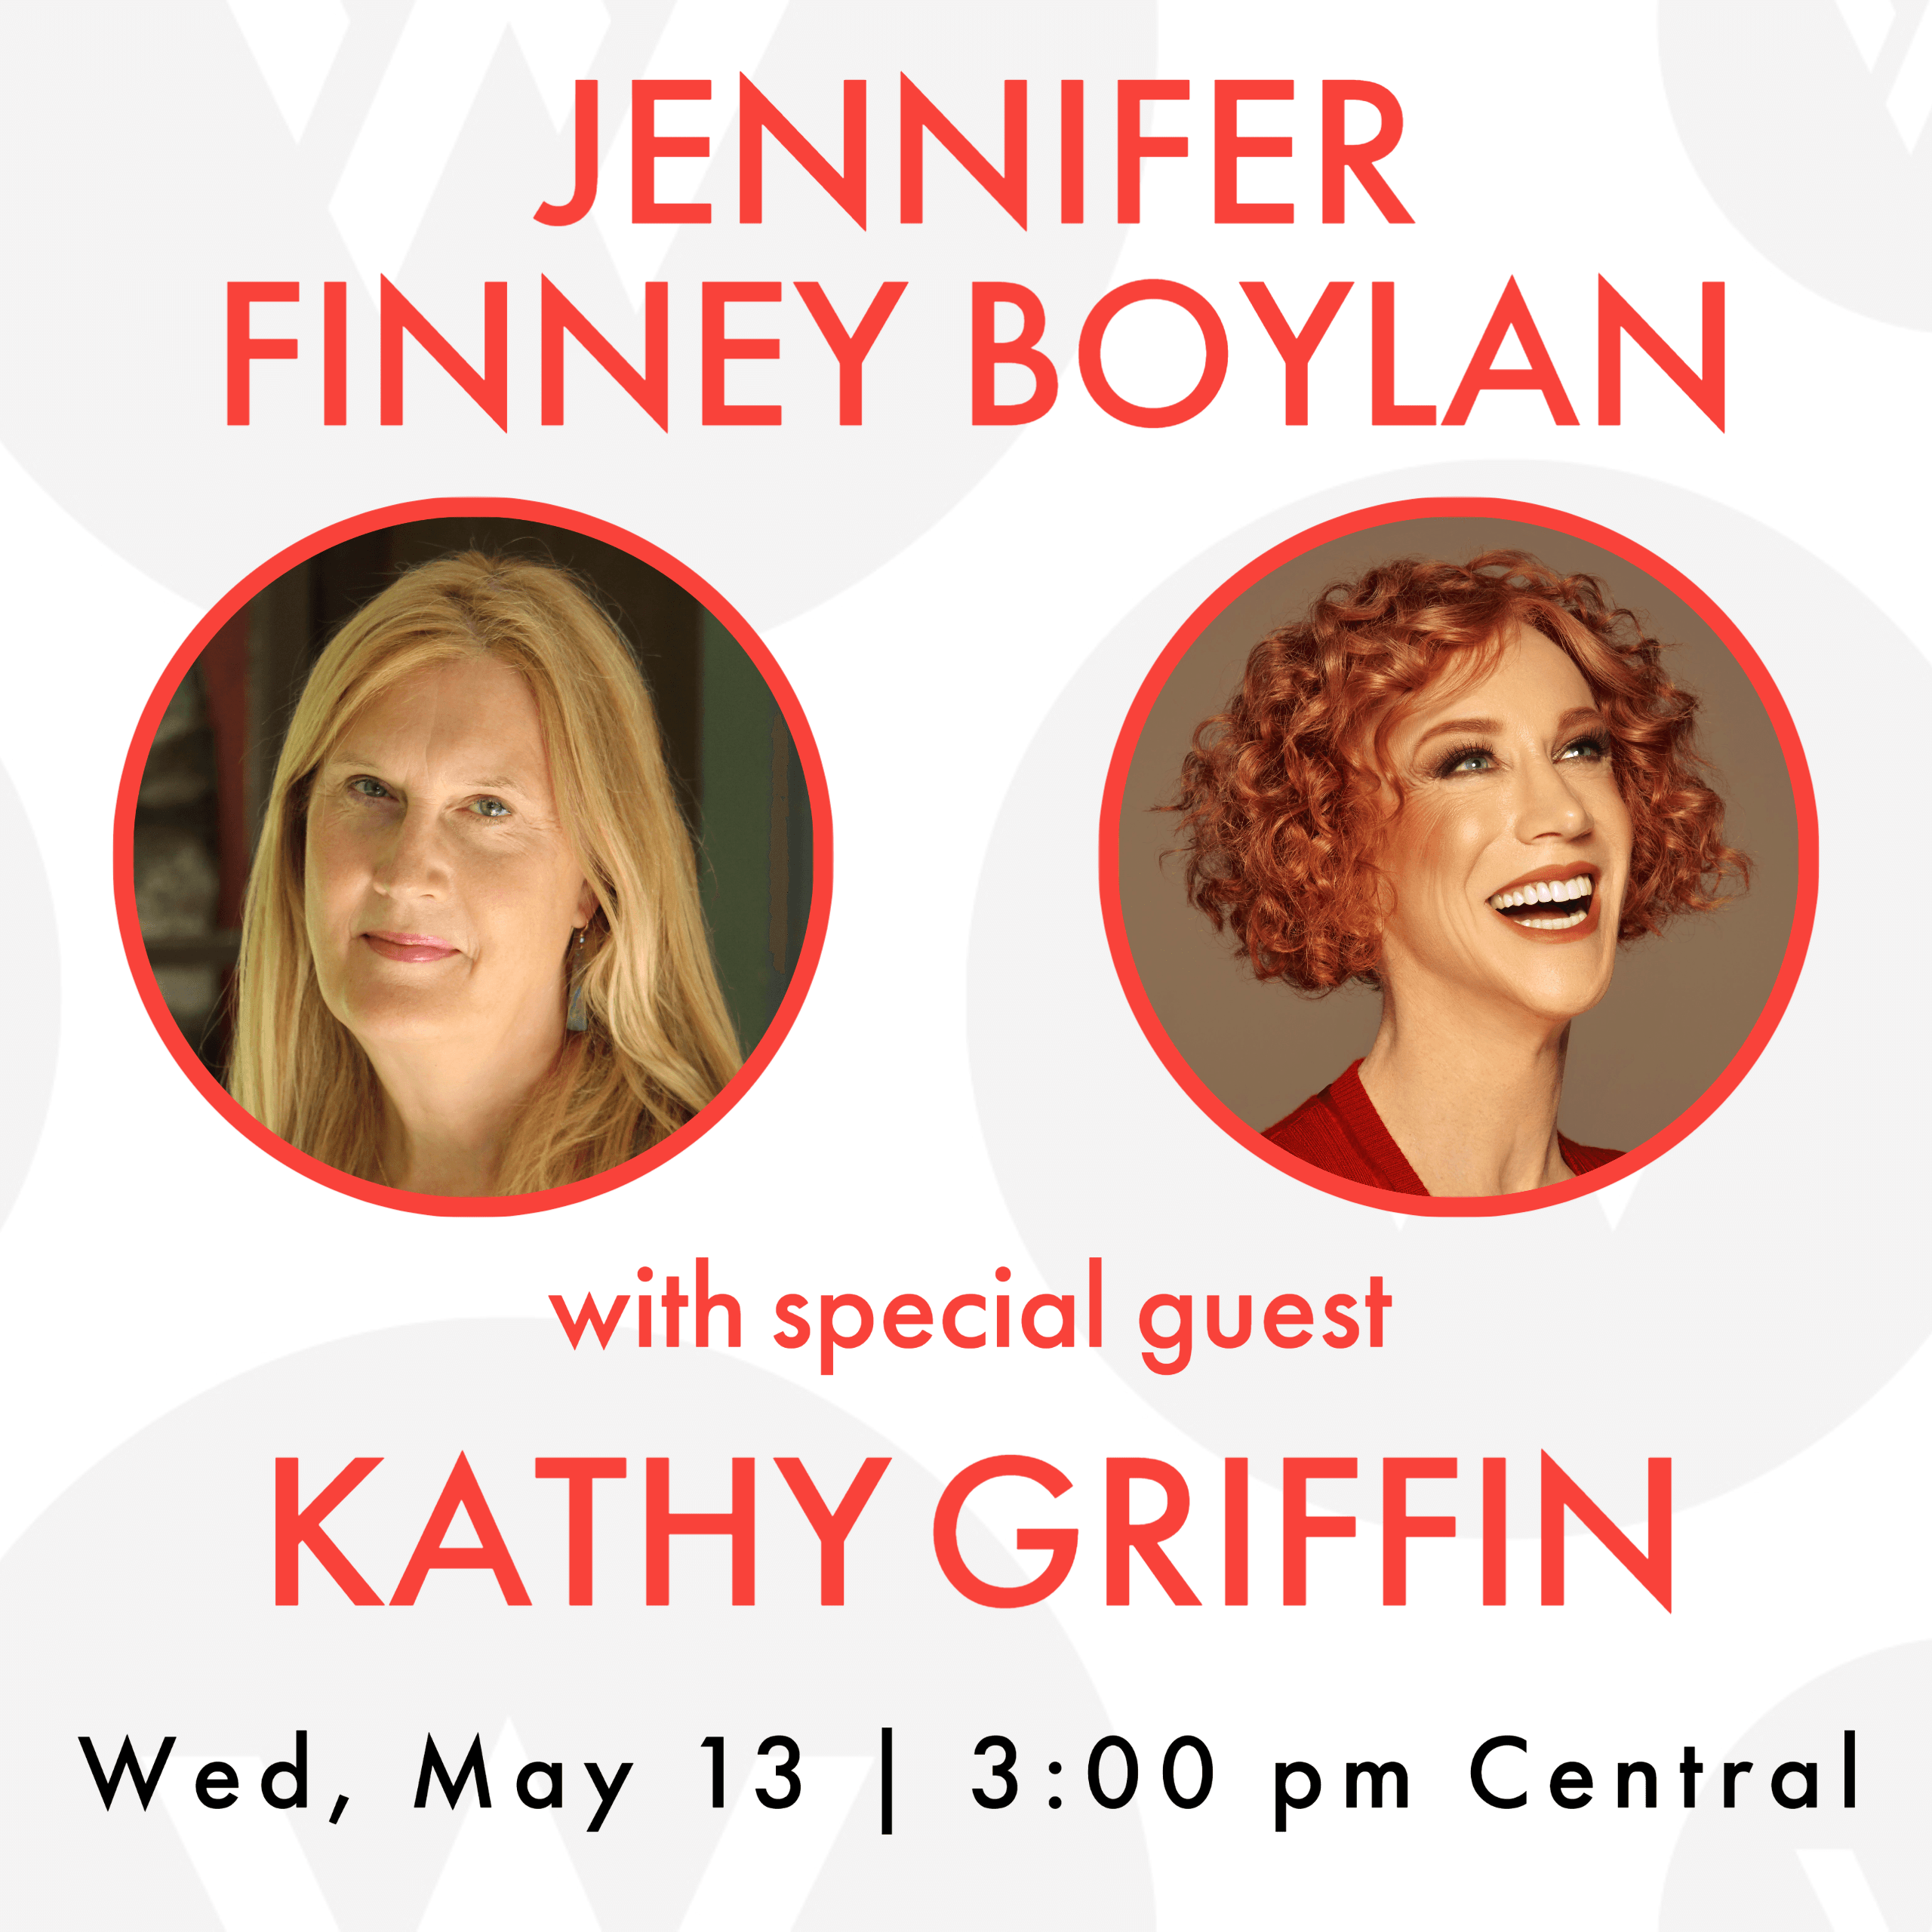 Jennifer Finney Boylan discusses their new book Good Boy with special guest Kathy Griffin